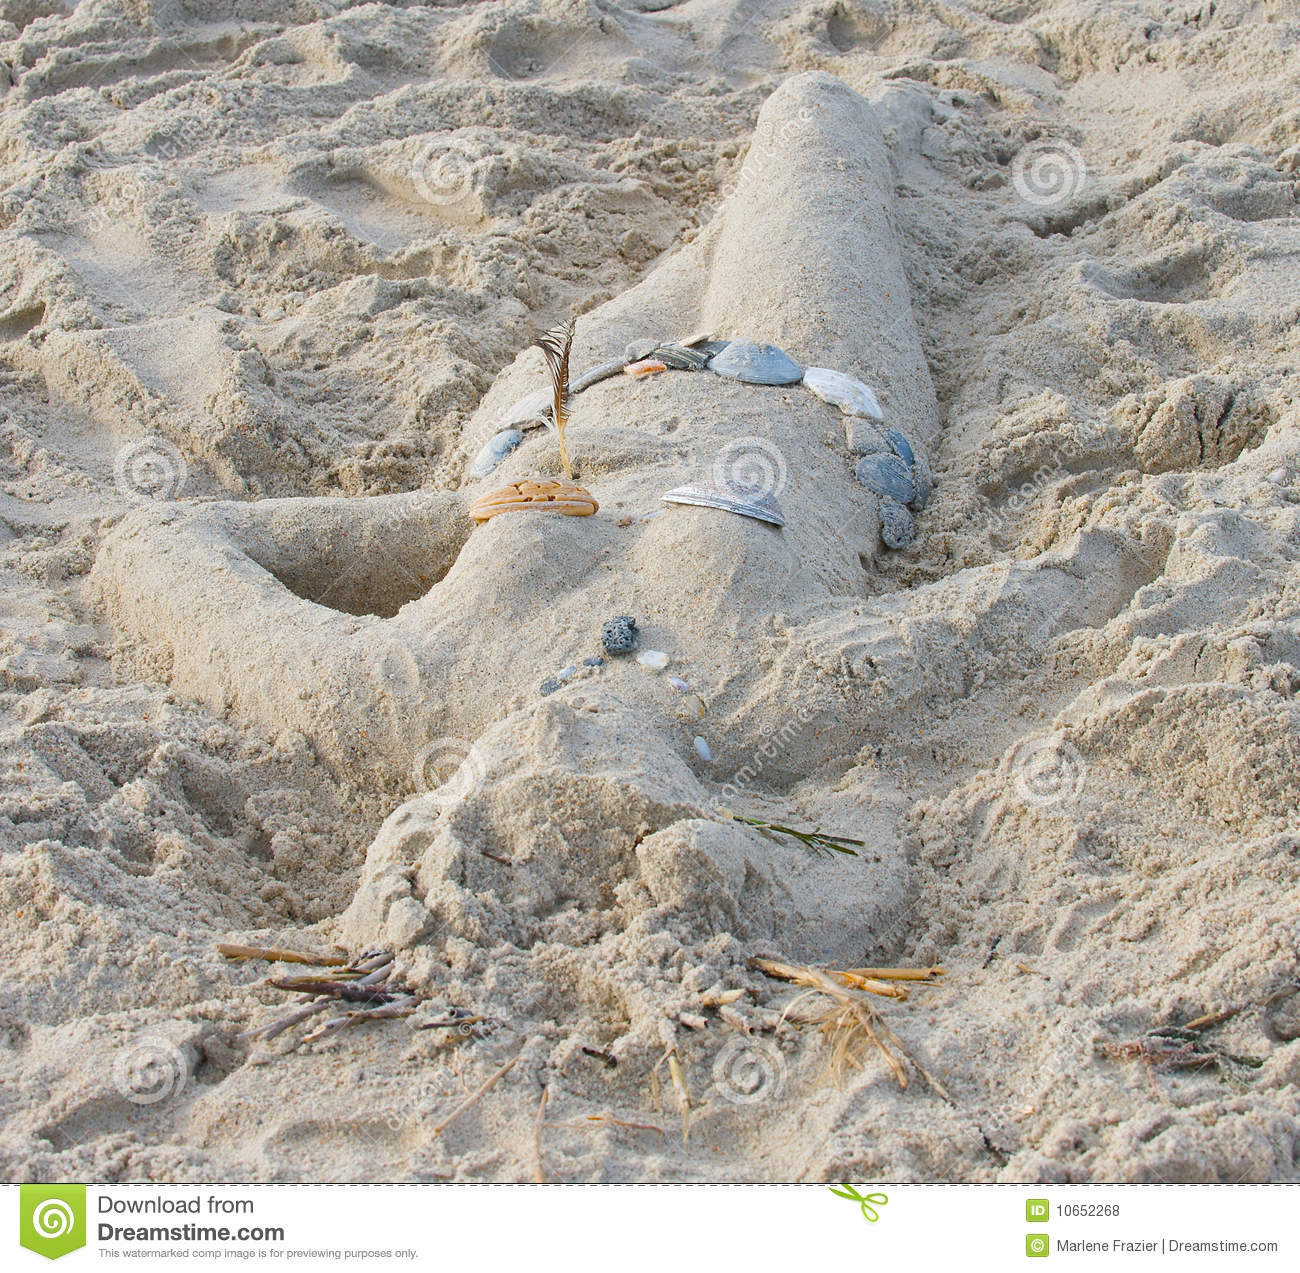 Sand sculpture of a woman with sea shell suit.